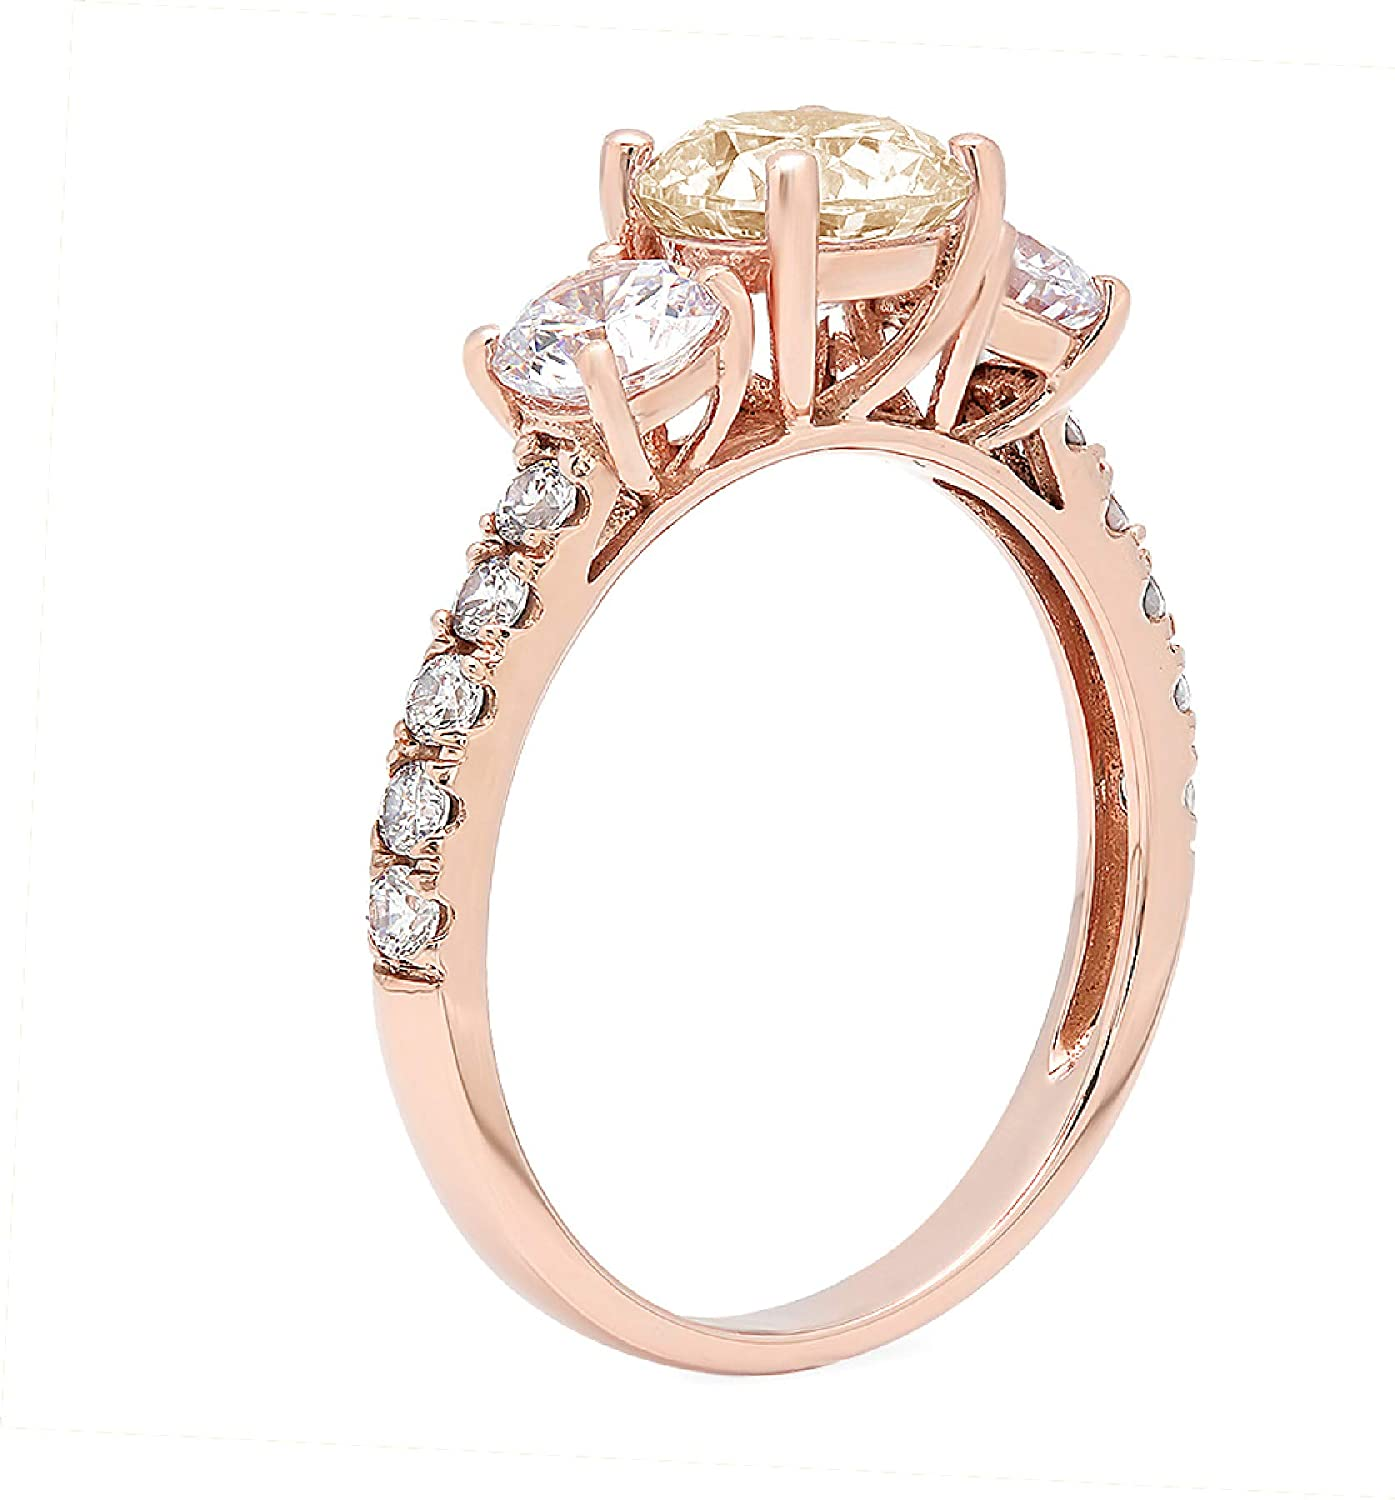 2ct Brilliant Round Cut Solitaire 3 stone With Accent Designer Genuine Natural Morganite Gemstone Ideal VVS1 Engagement Promise Anniversary Bridal Wedding Ring 14k Rose Pink Gold